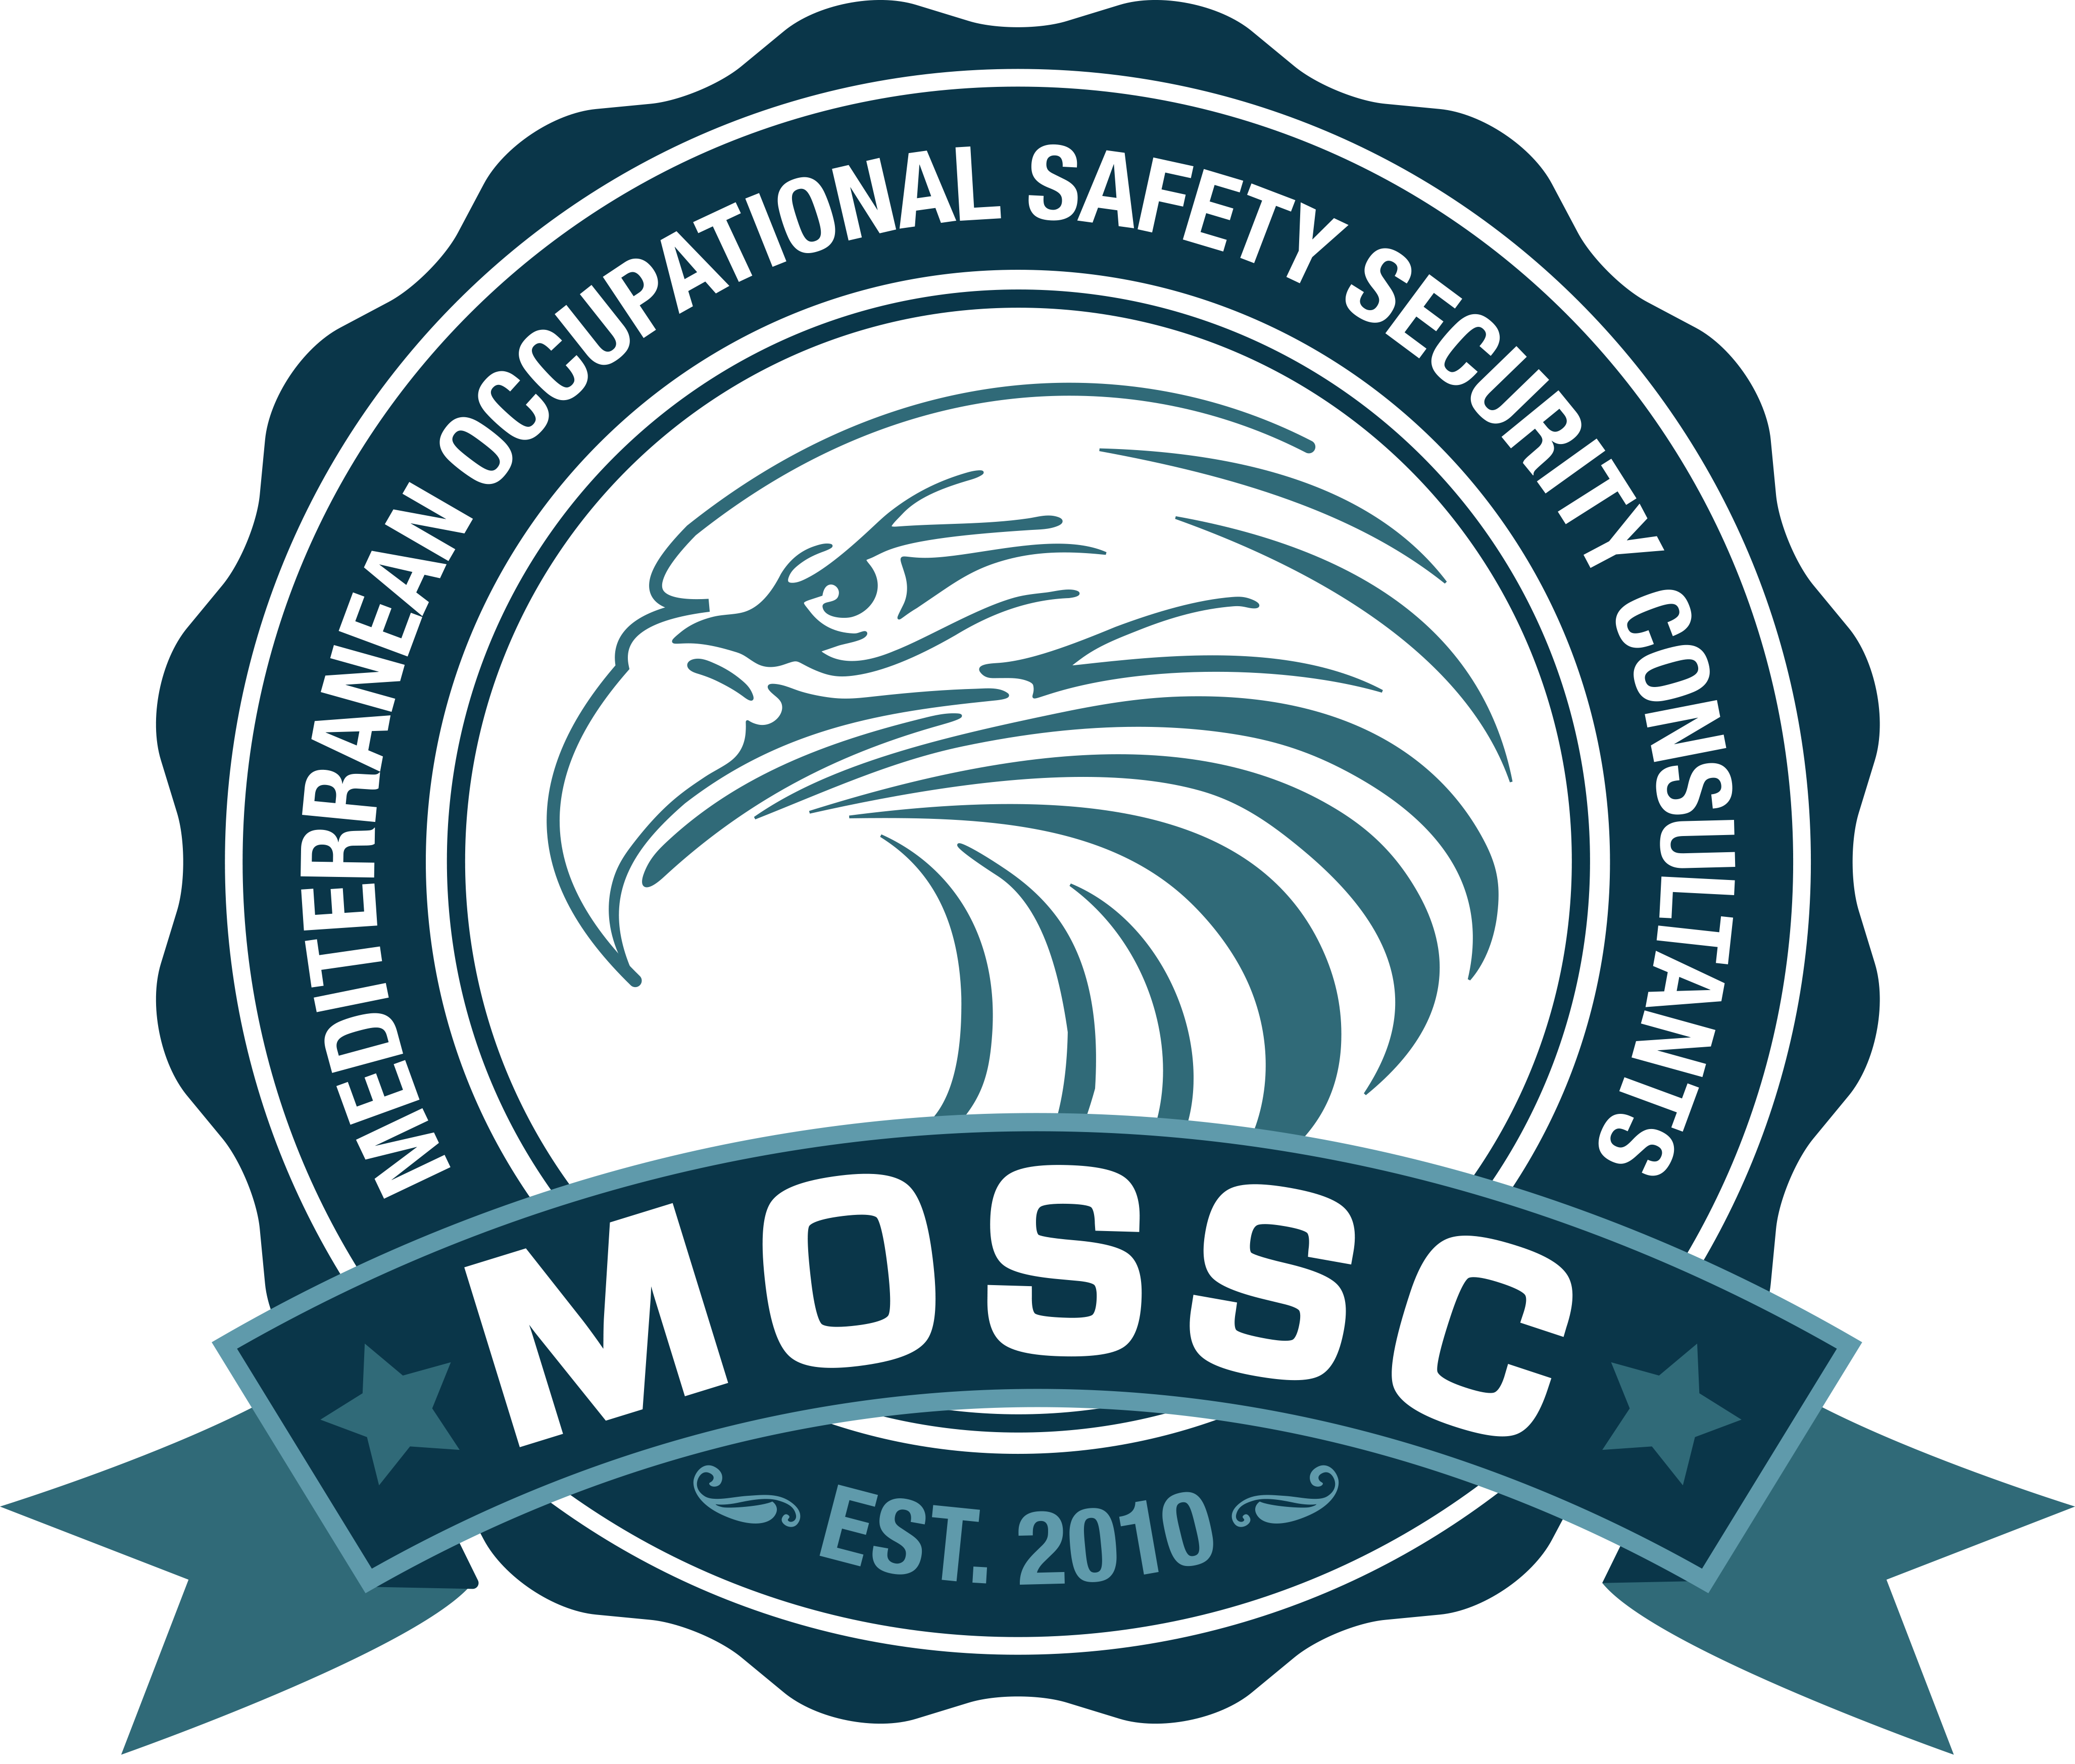 MOSSC Shooting Association